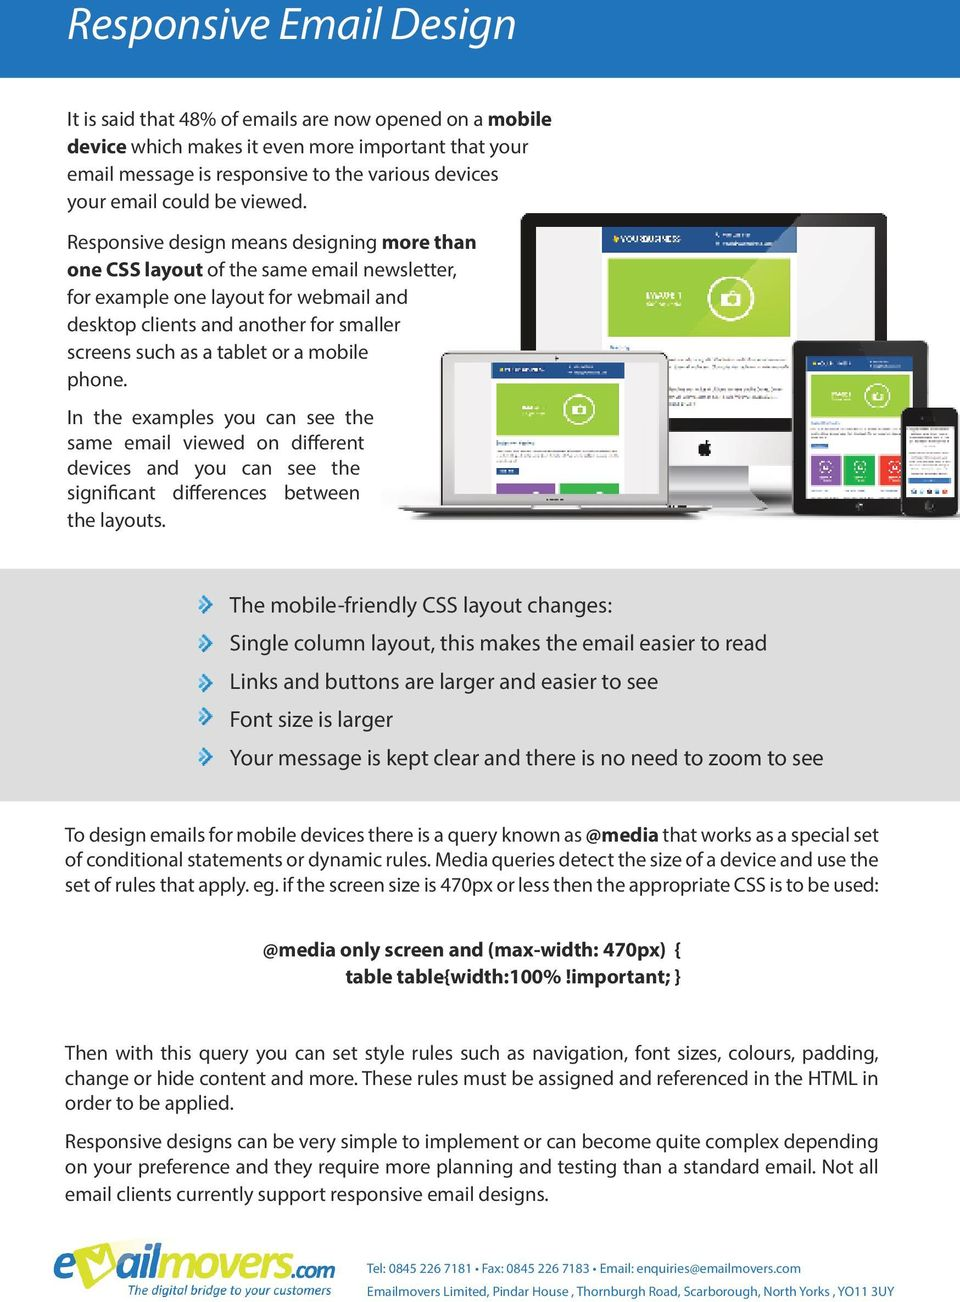 Responsive design means designing more than one CSS layout of the same email newsletter, for example one layout for webmail and desktop clients and another for smaller screens such as a tablet or a